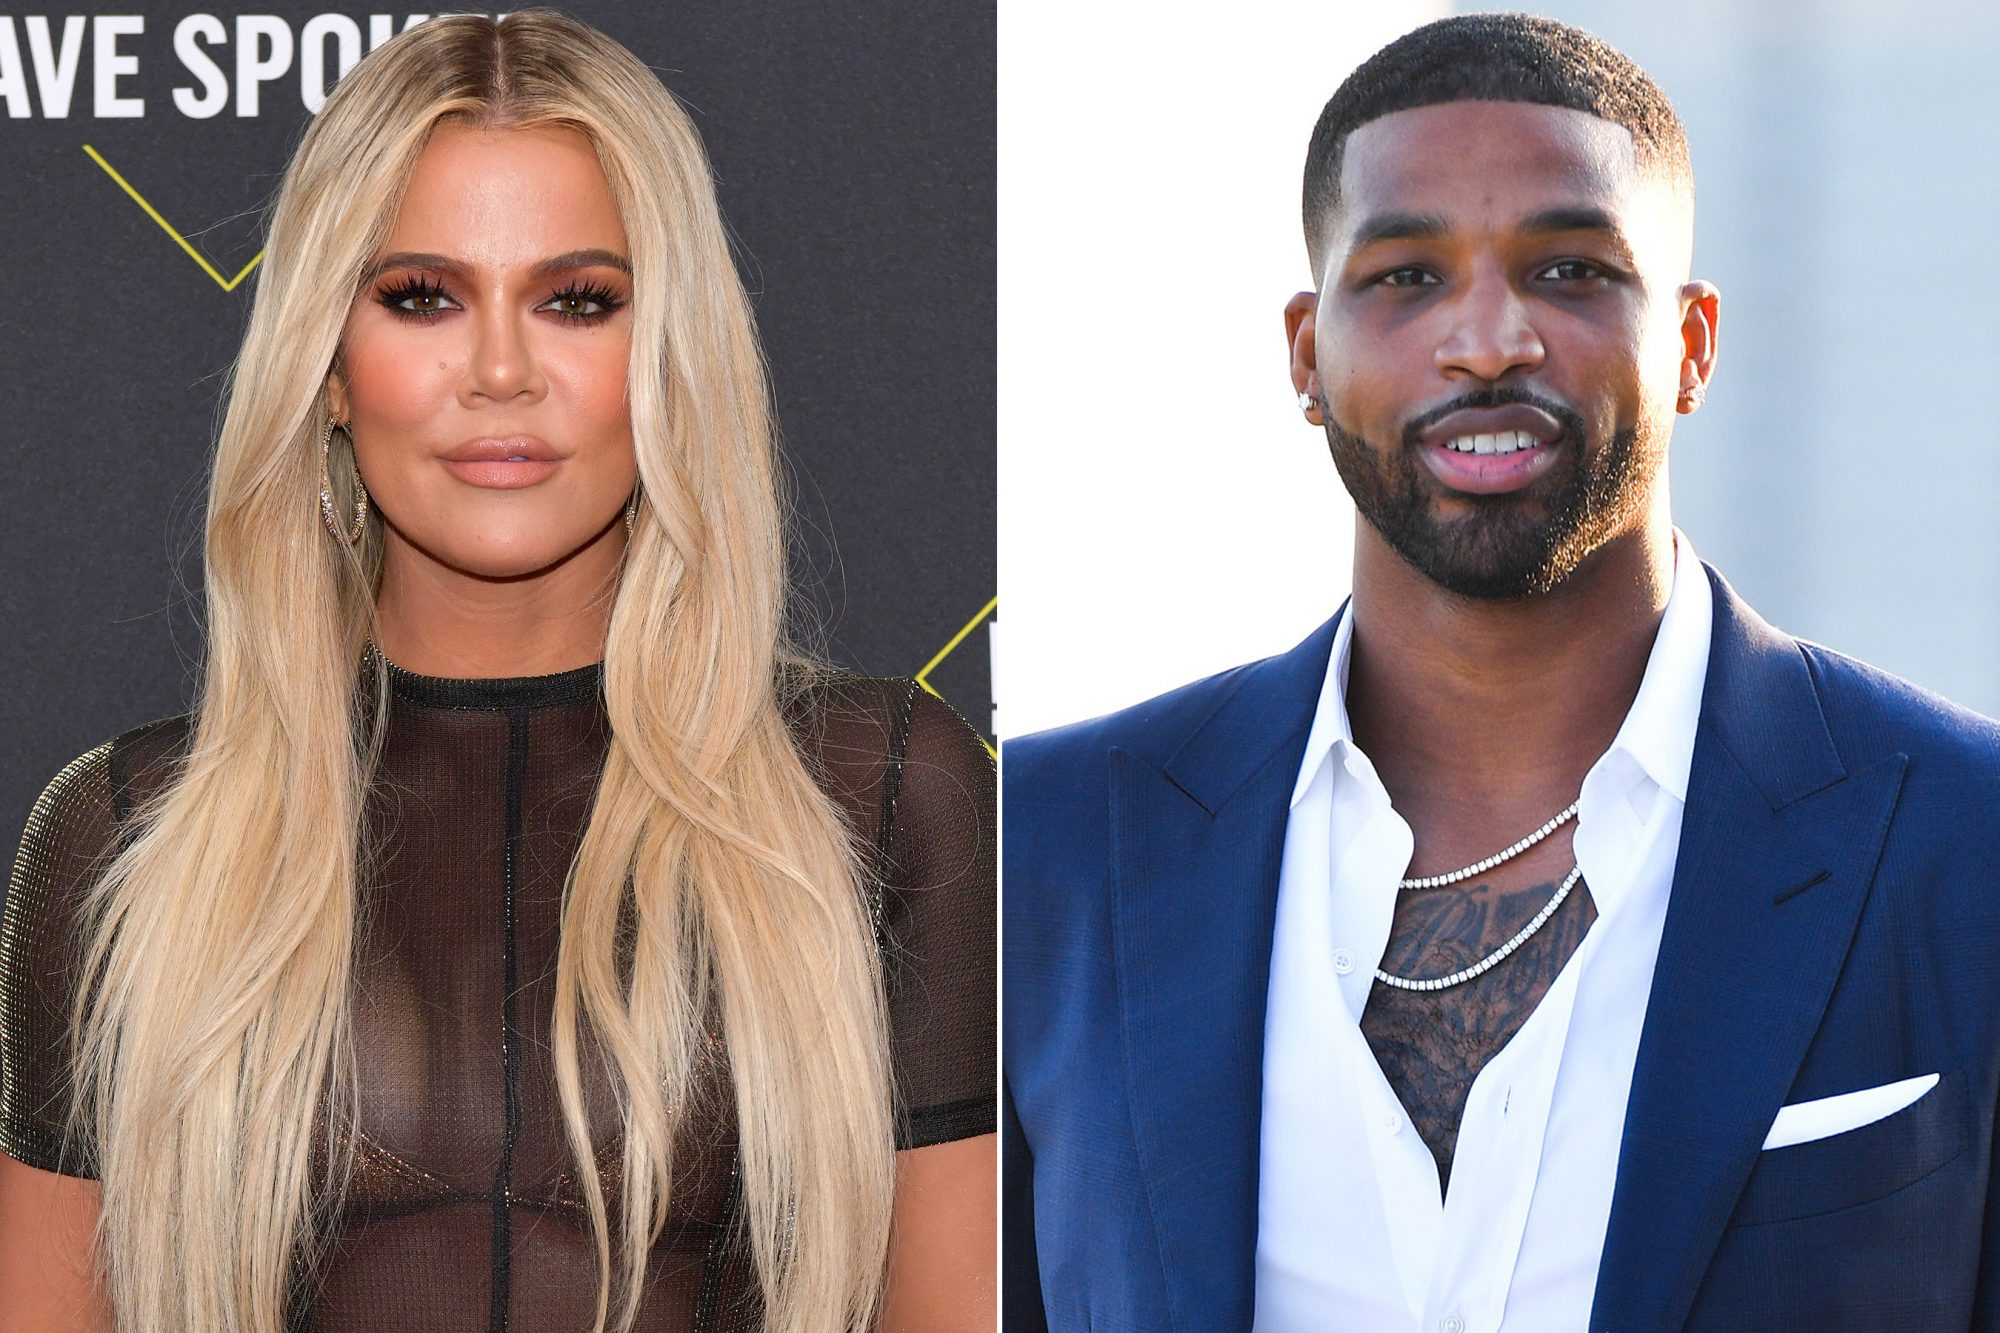 Khloe Kardashian Has The Best Reaction To Tristan Thompson Engagement Rumors